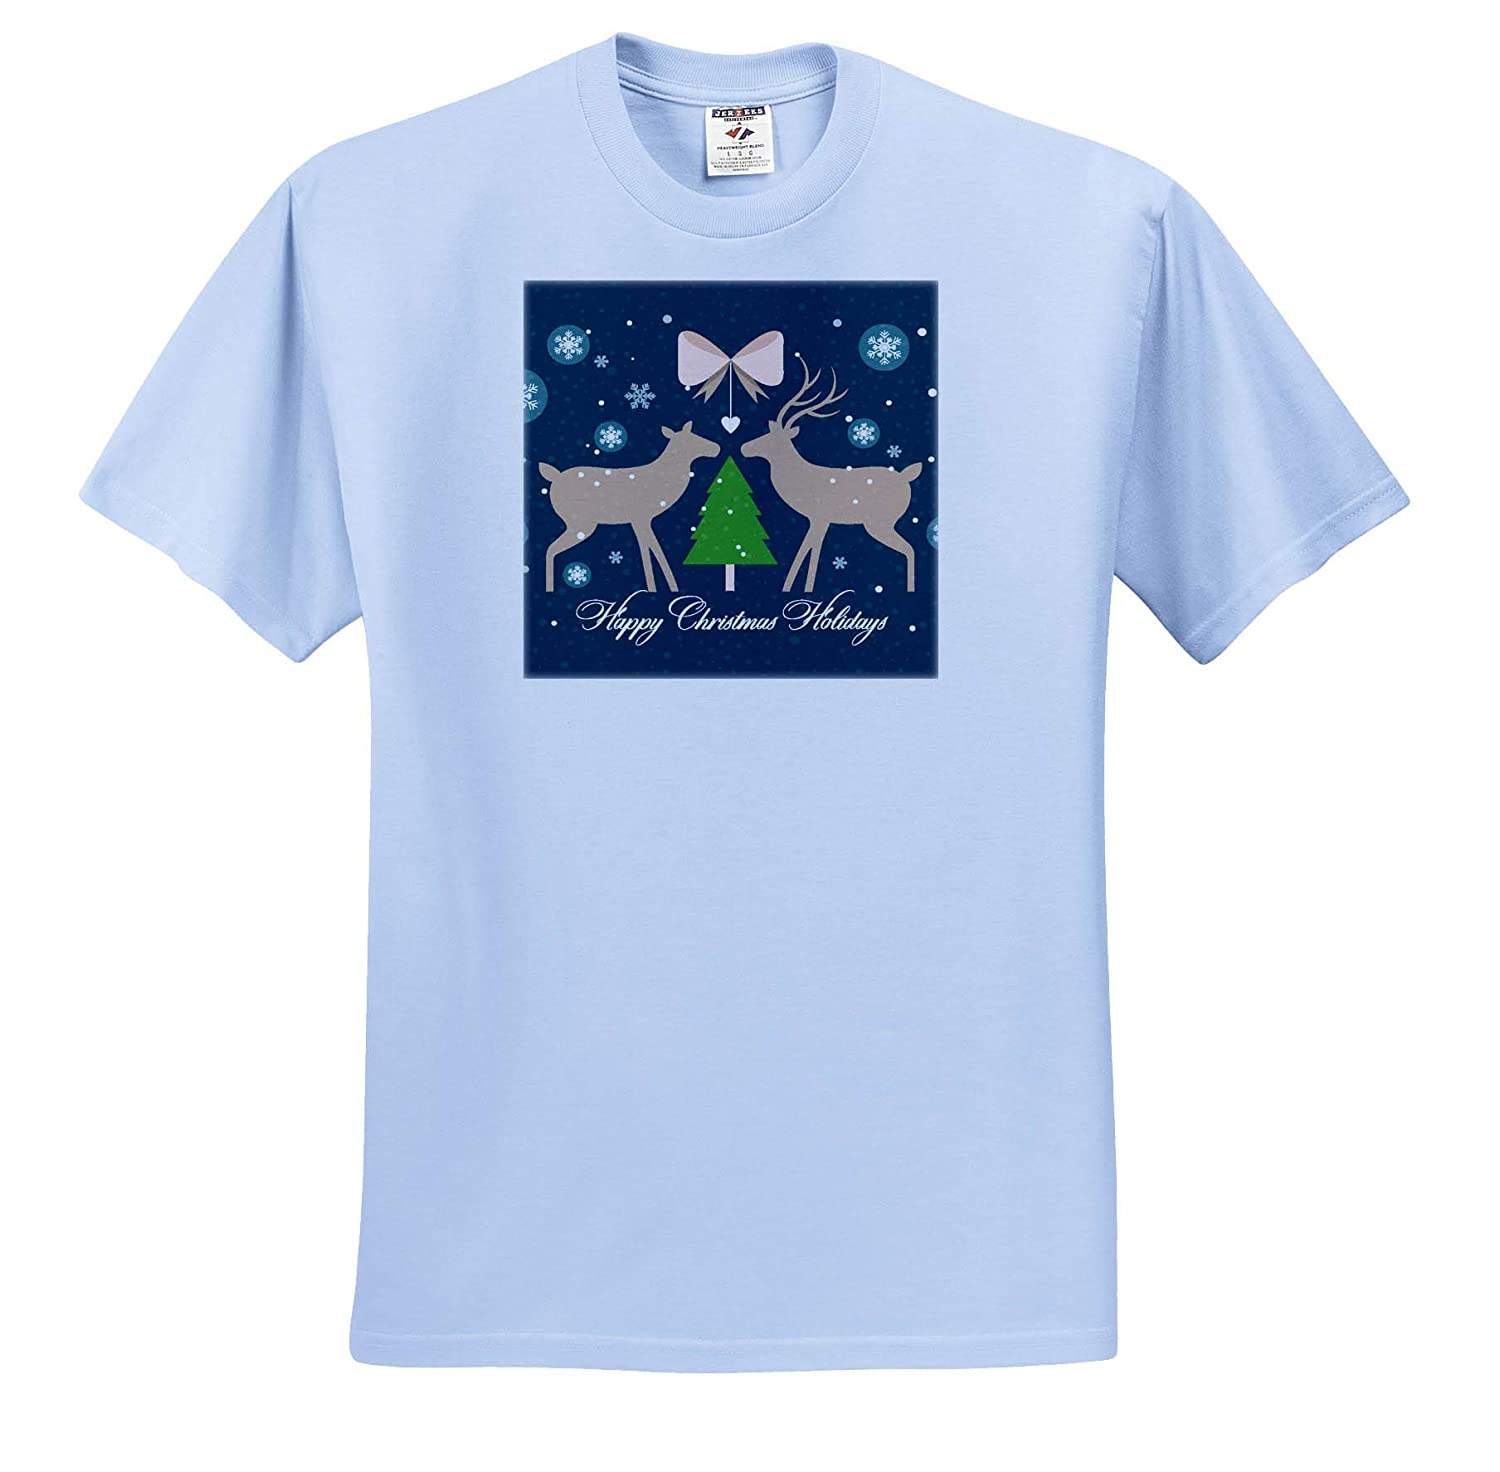 T-Shirts 3dRose Sven Herkenrath Christmas Happy Christmas Holiday with Grey Deers and Snowflake